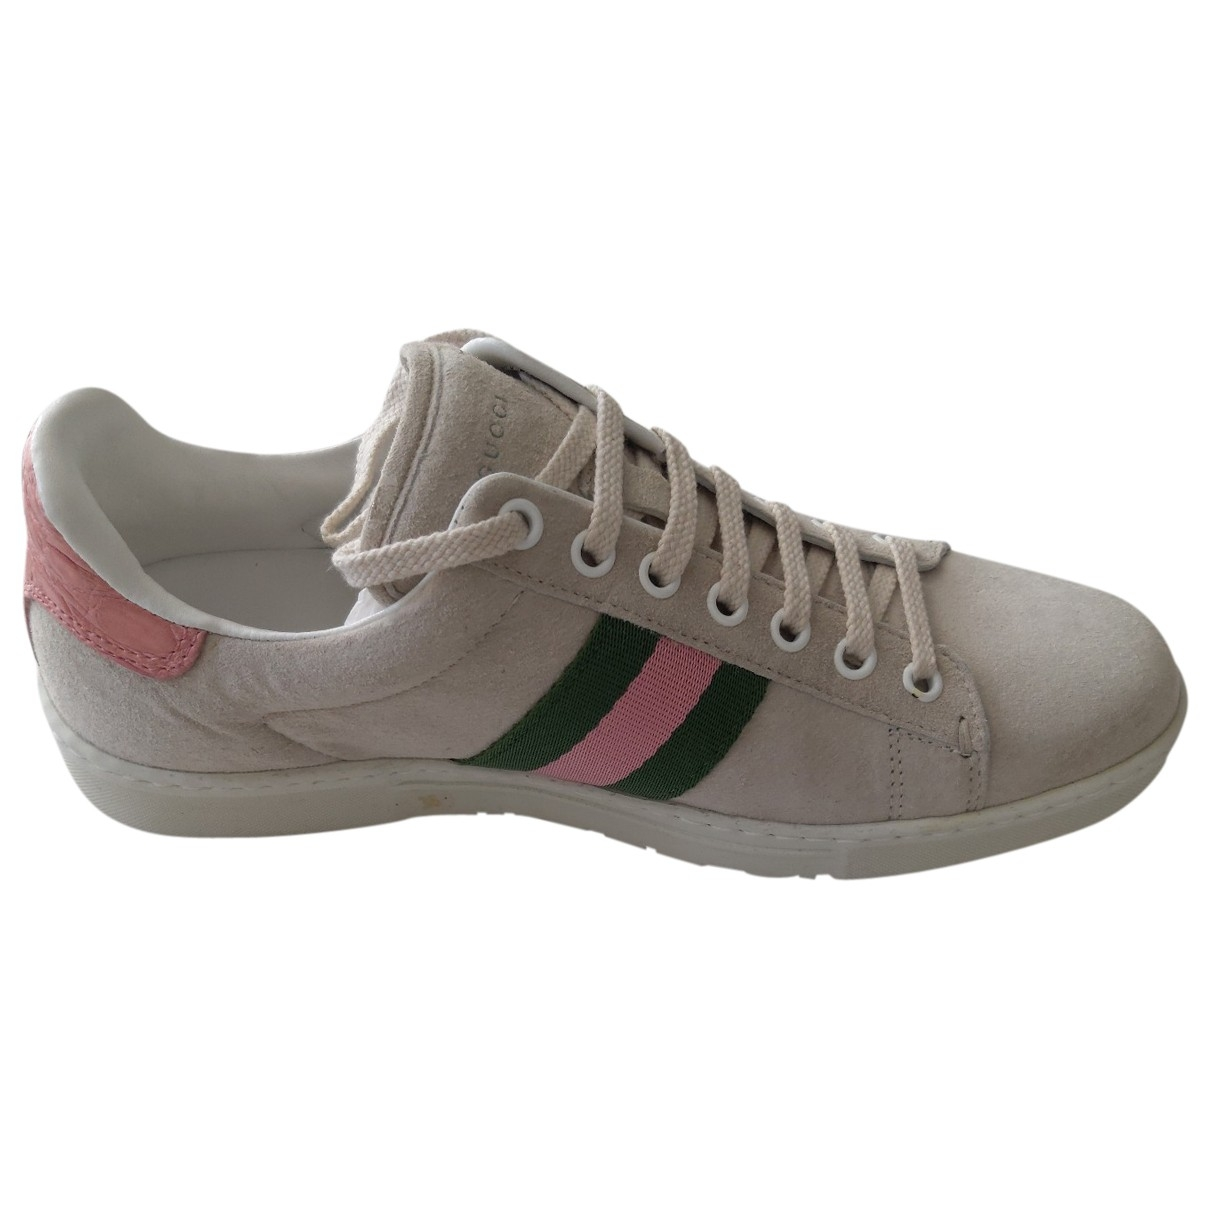 Gucci Ace Grey Leather Trainers for Women 36 EU